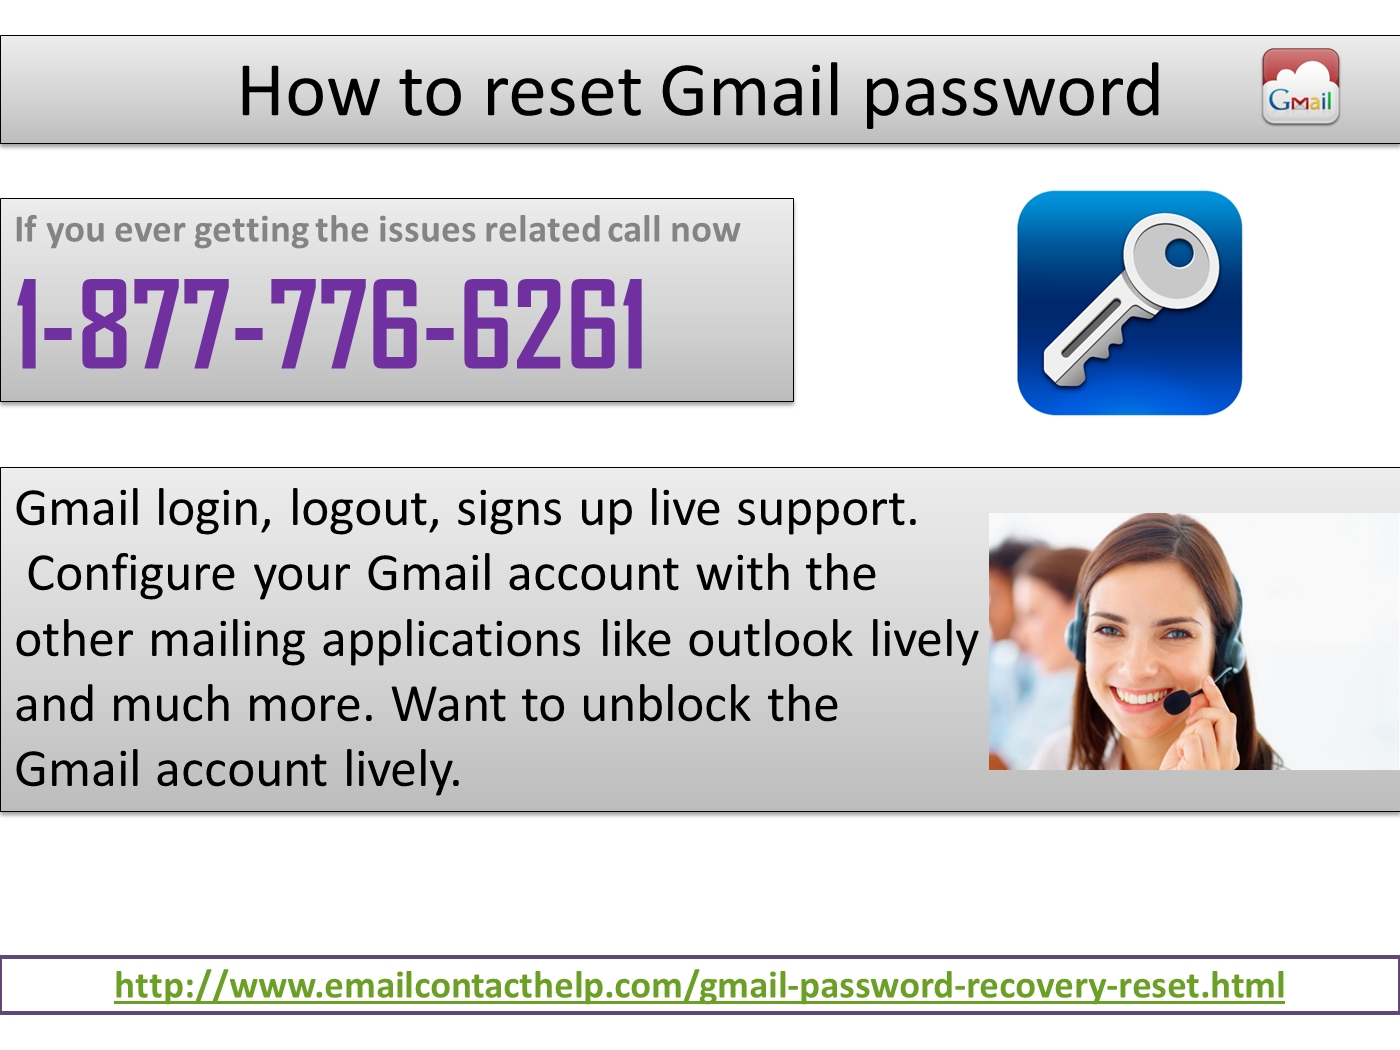 Ring how to reset gmail password 1 877 776 6261 and avail unlimited assistance powerpoint presentation ppt